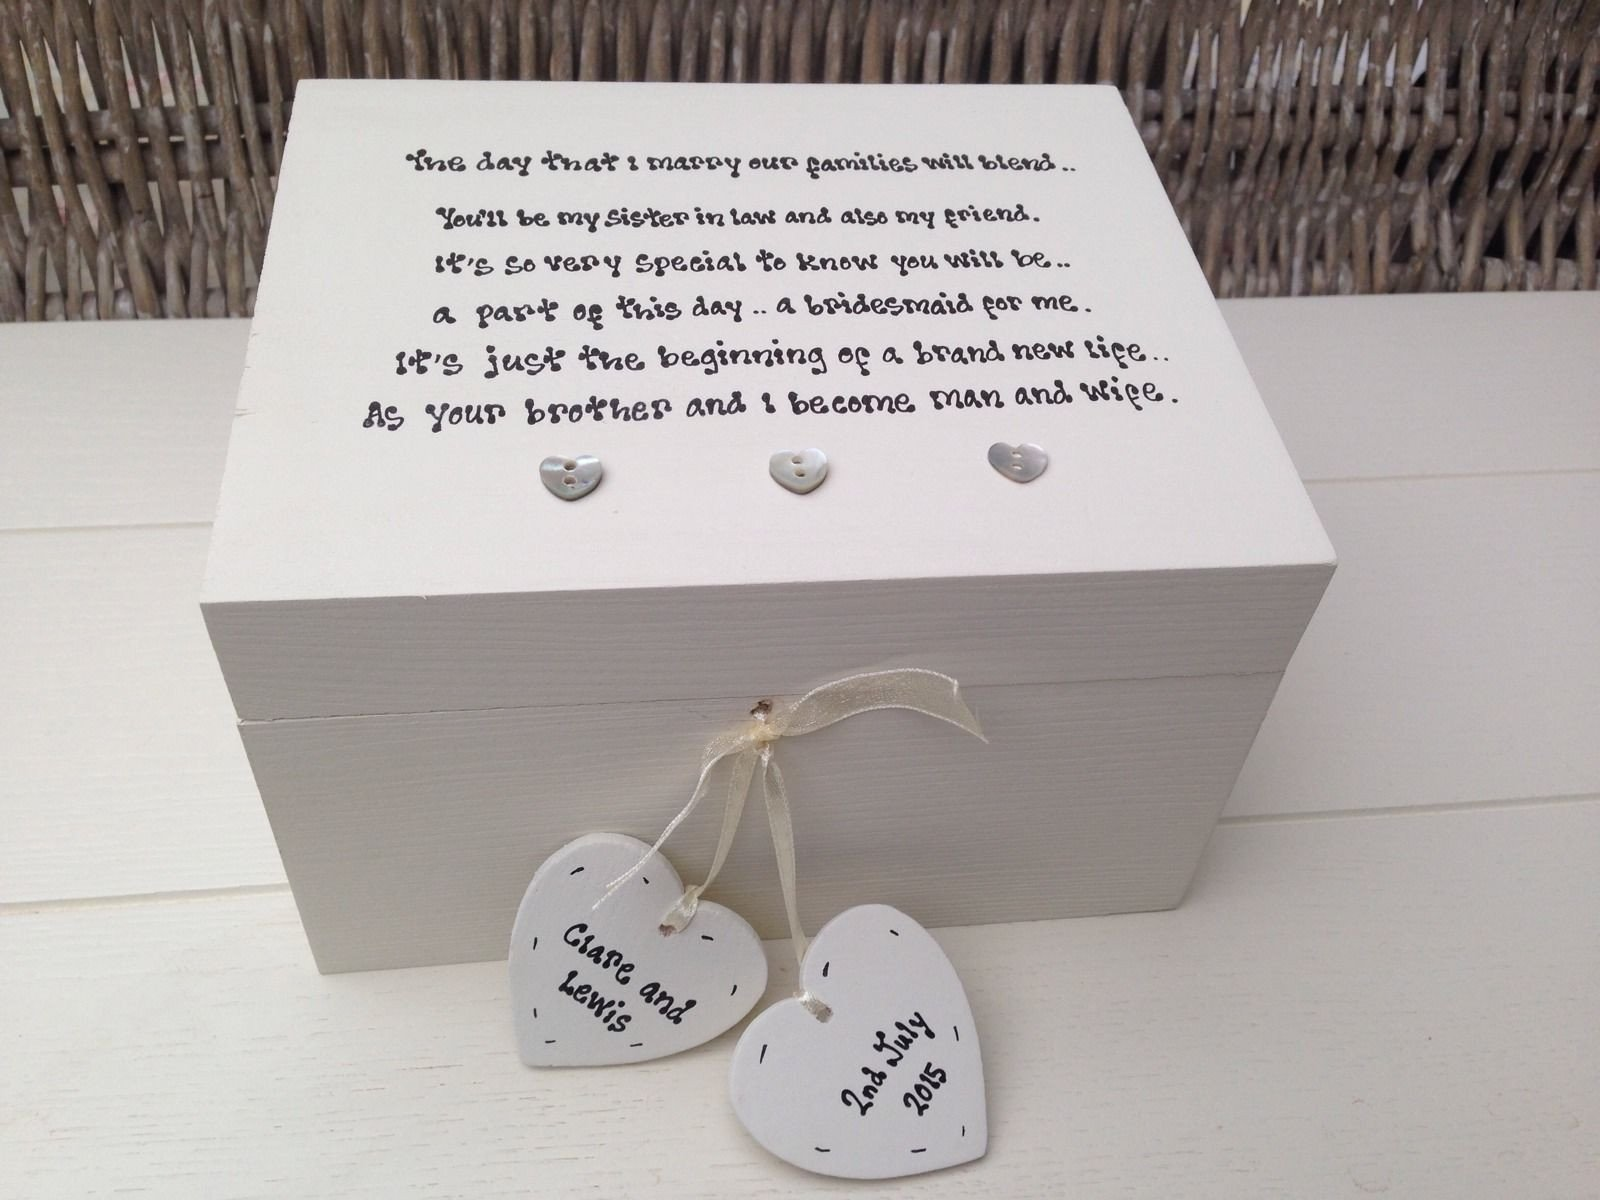 10 Most Recommended Wedding Gift Ideas For Sister perfect wedding gift ideas for sister kingofhearts 2020